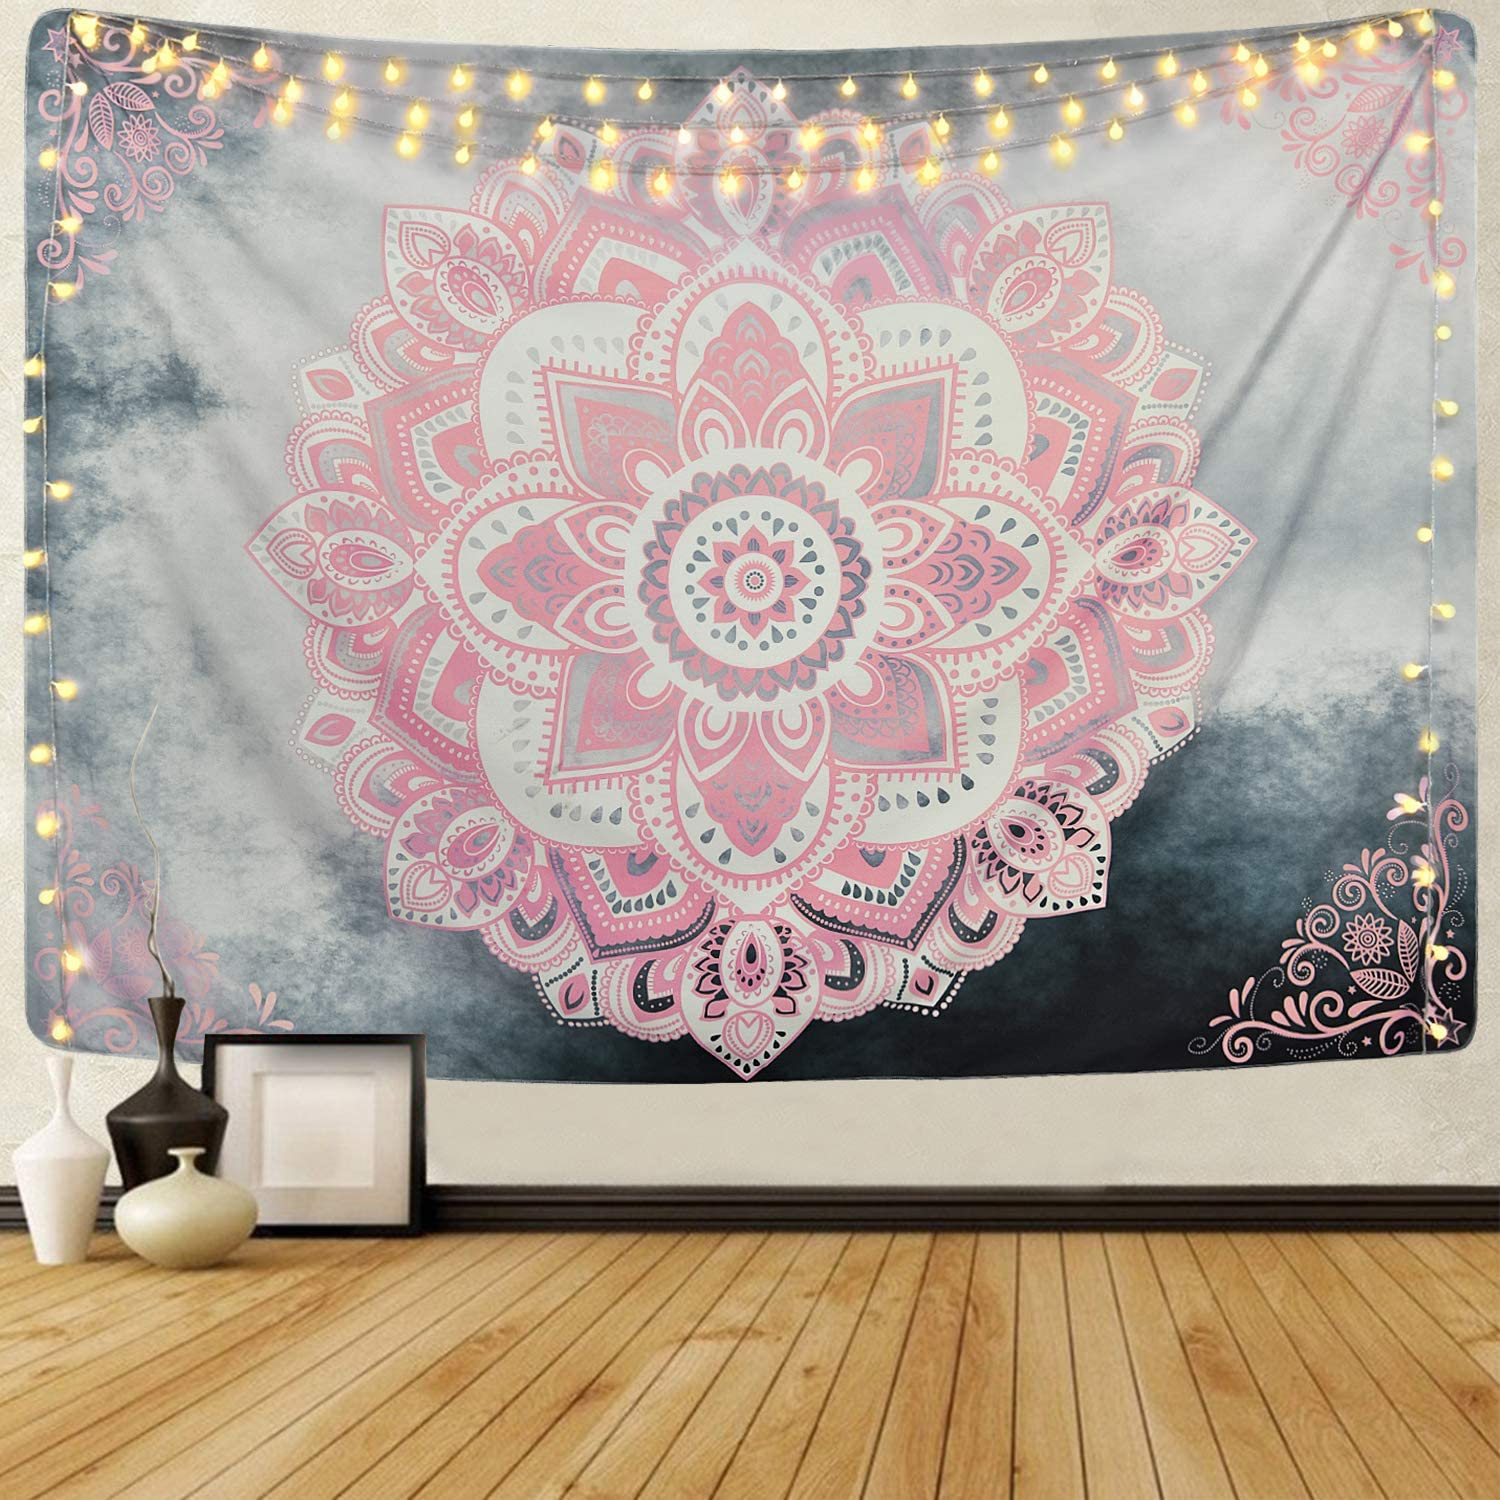 Sevenstars Pink Mandala Tapestry Bohemian Tapestries Hippie Tapestry Floral Medallion Tapestry for Bedroom